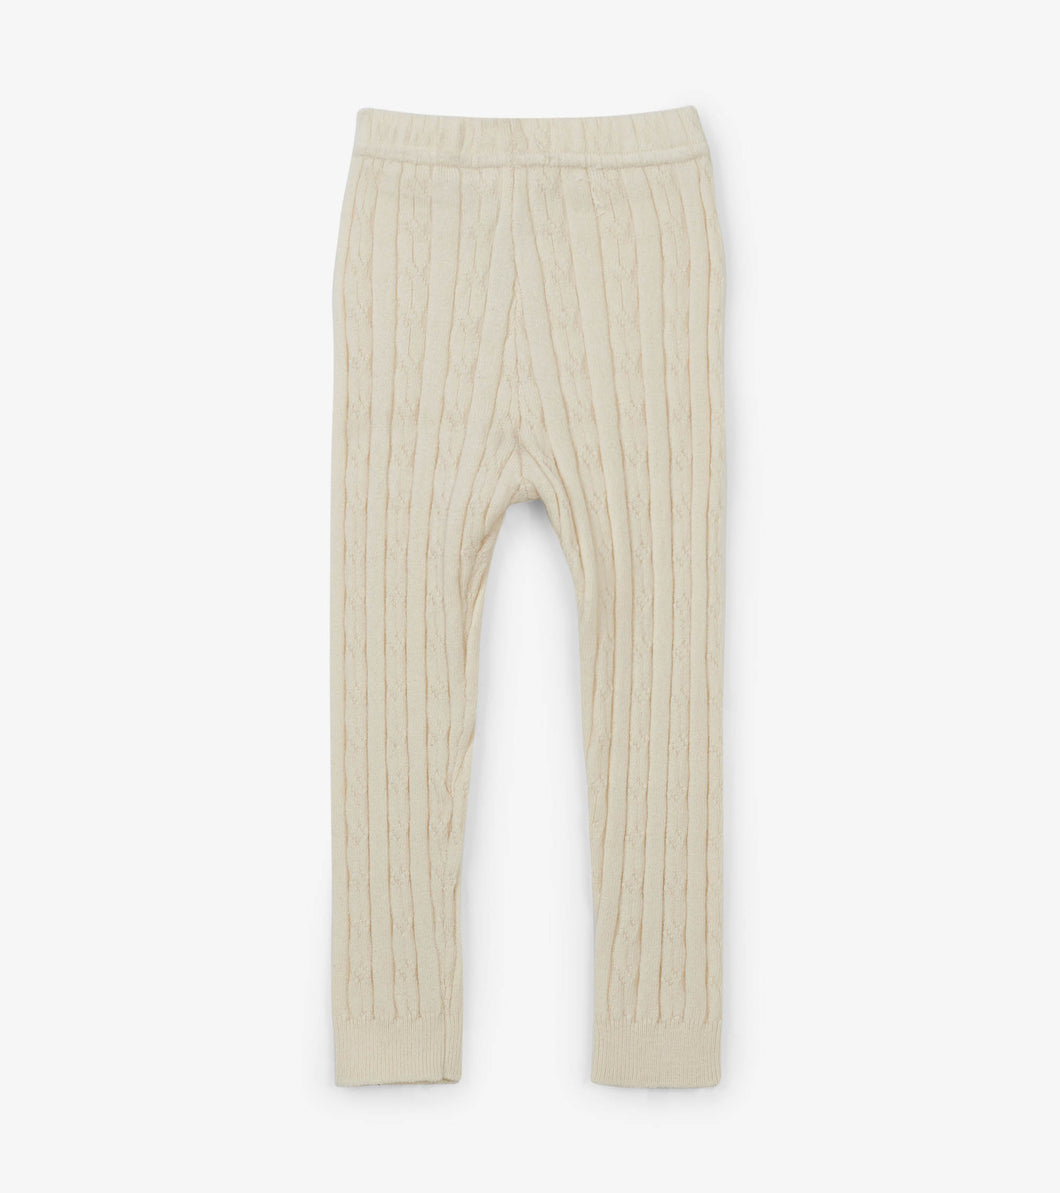 Cream Cable Knit Baby Leggings